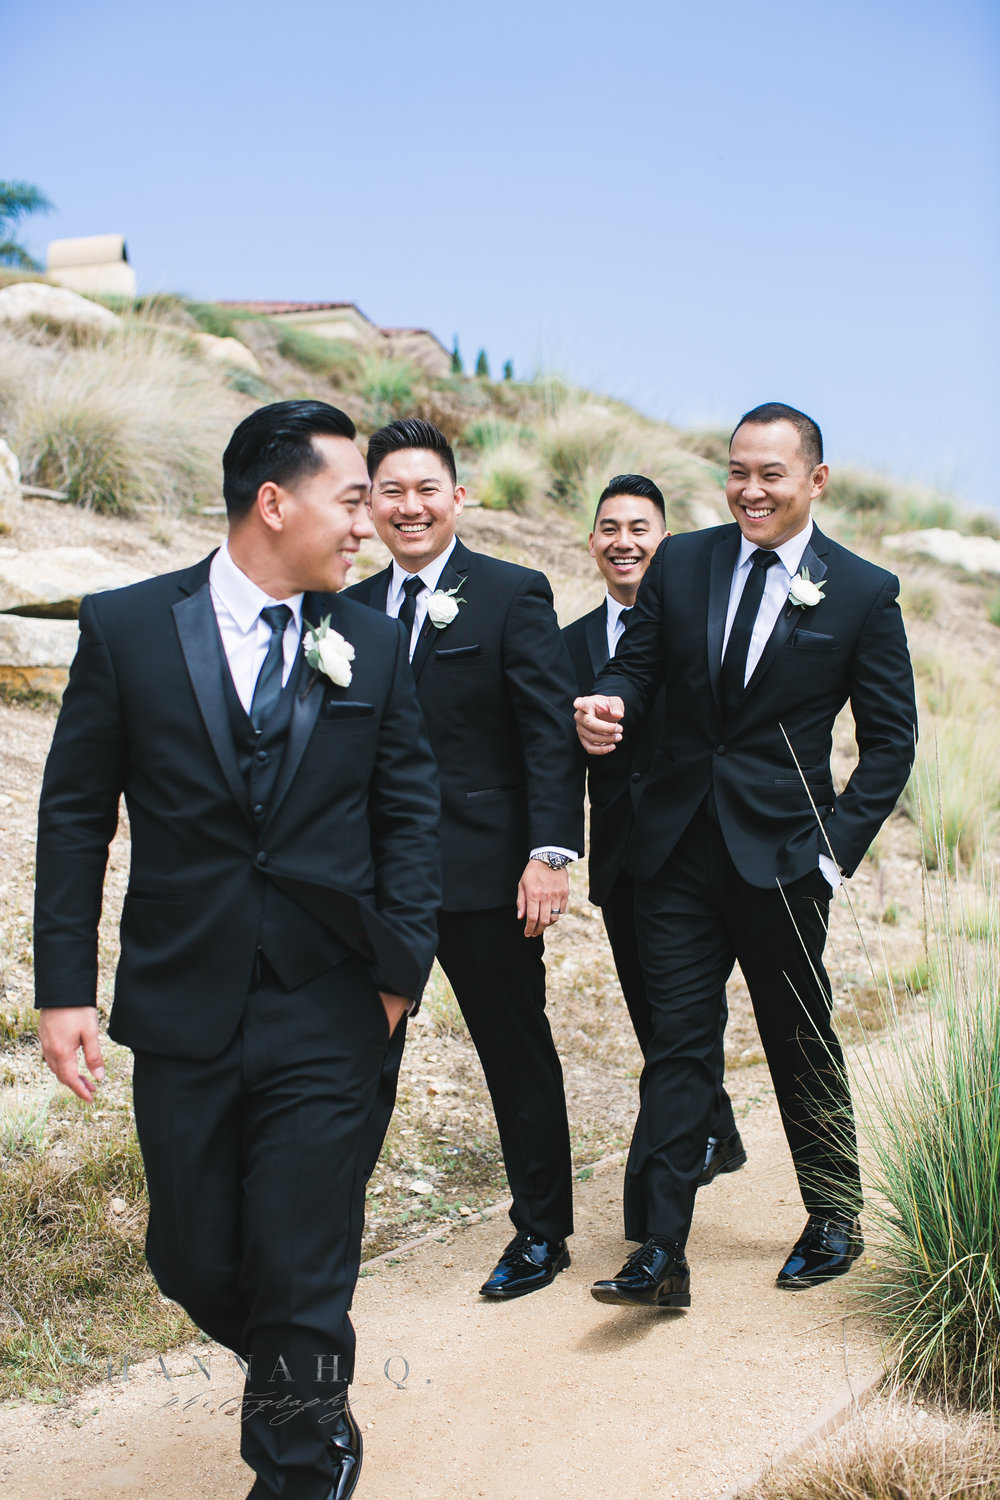 After the beautiful ceremony, we had so much time to kill so we stopped by Terranea Cove for a bridal party photoshoot before heading to their reception at Miyako Hotel.